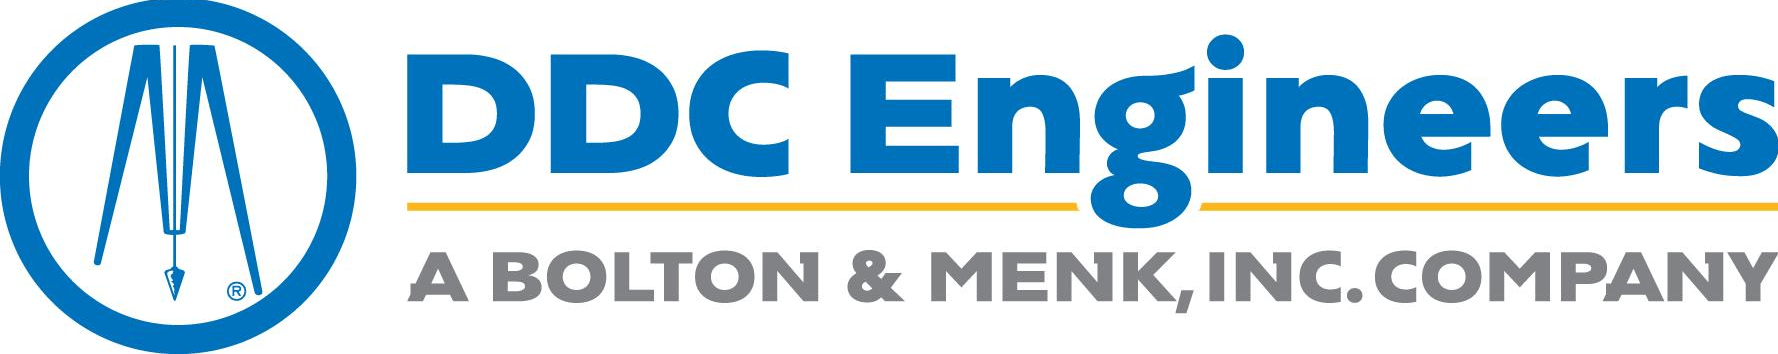 Bolton & Menk, Inc. Acquires DDC Engineers, Inc.